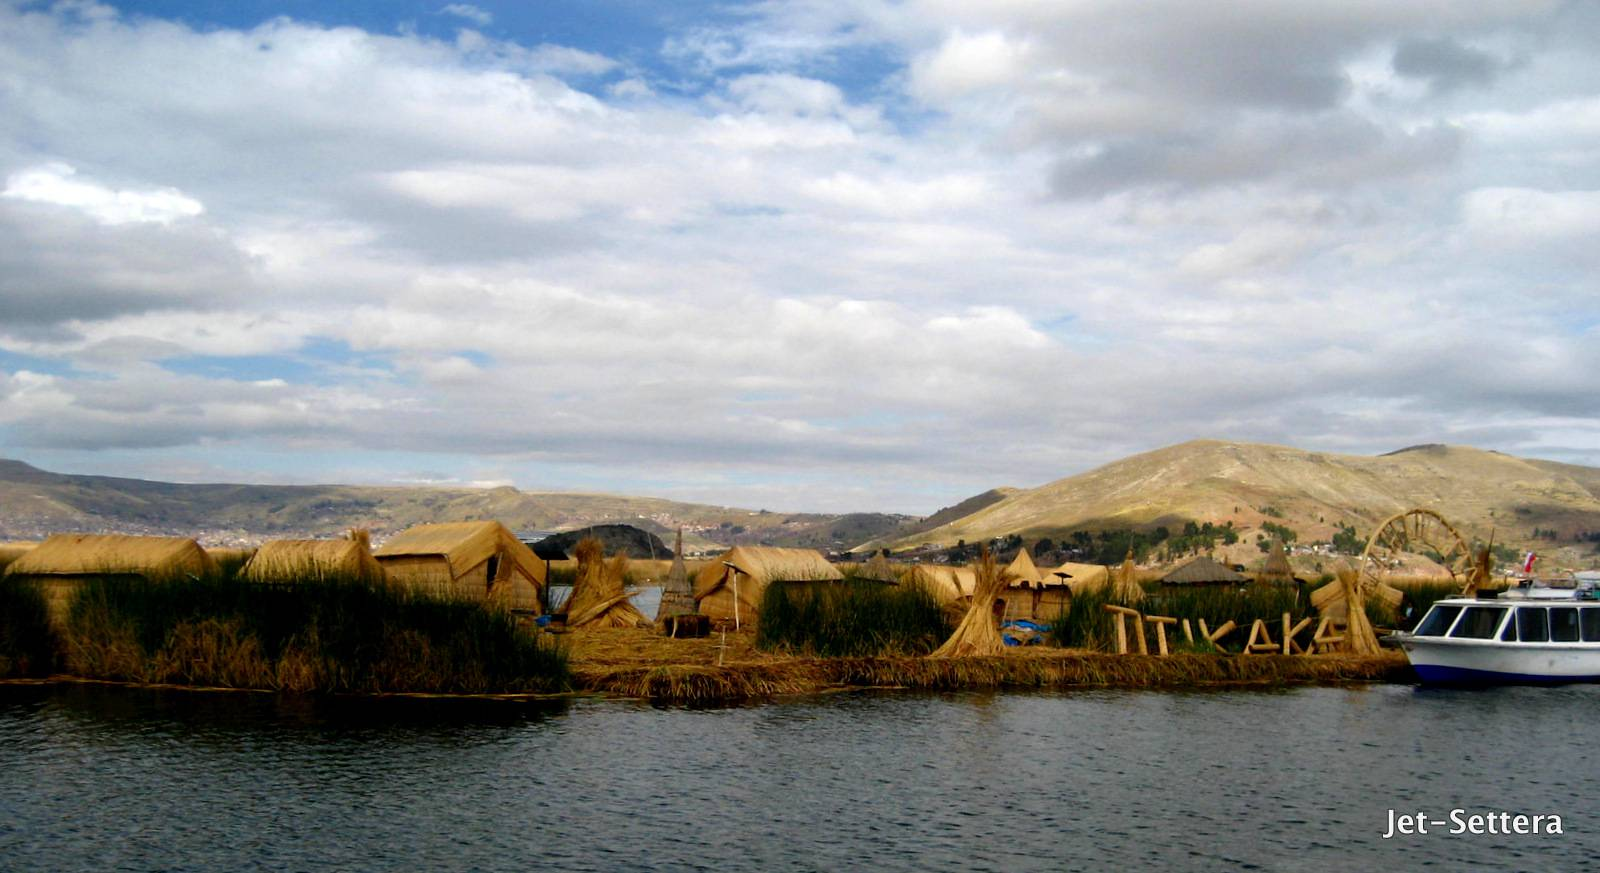 Lake Titicaca - Things to do in Machu Picchu